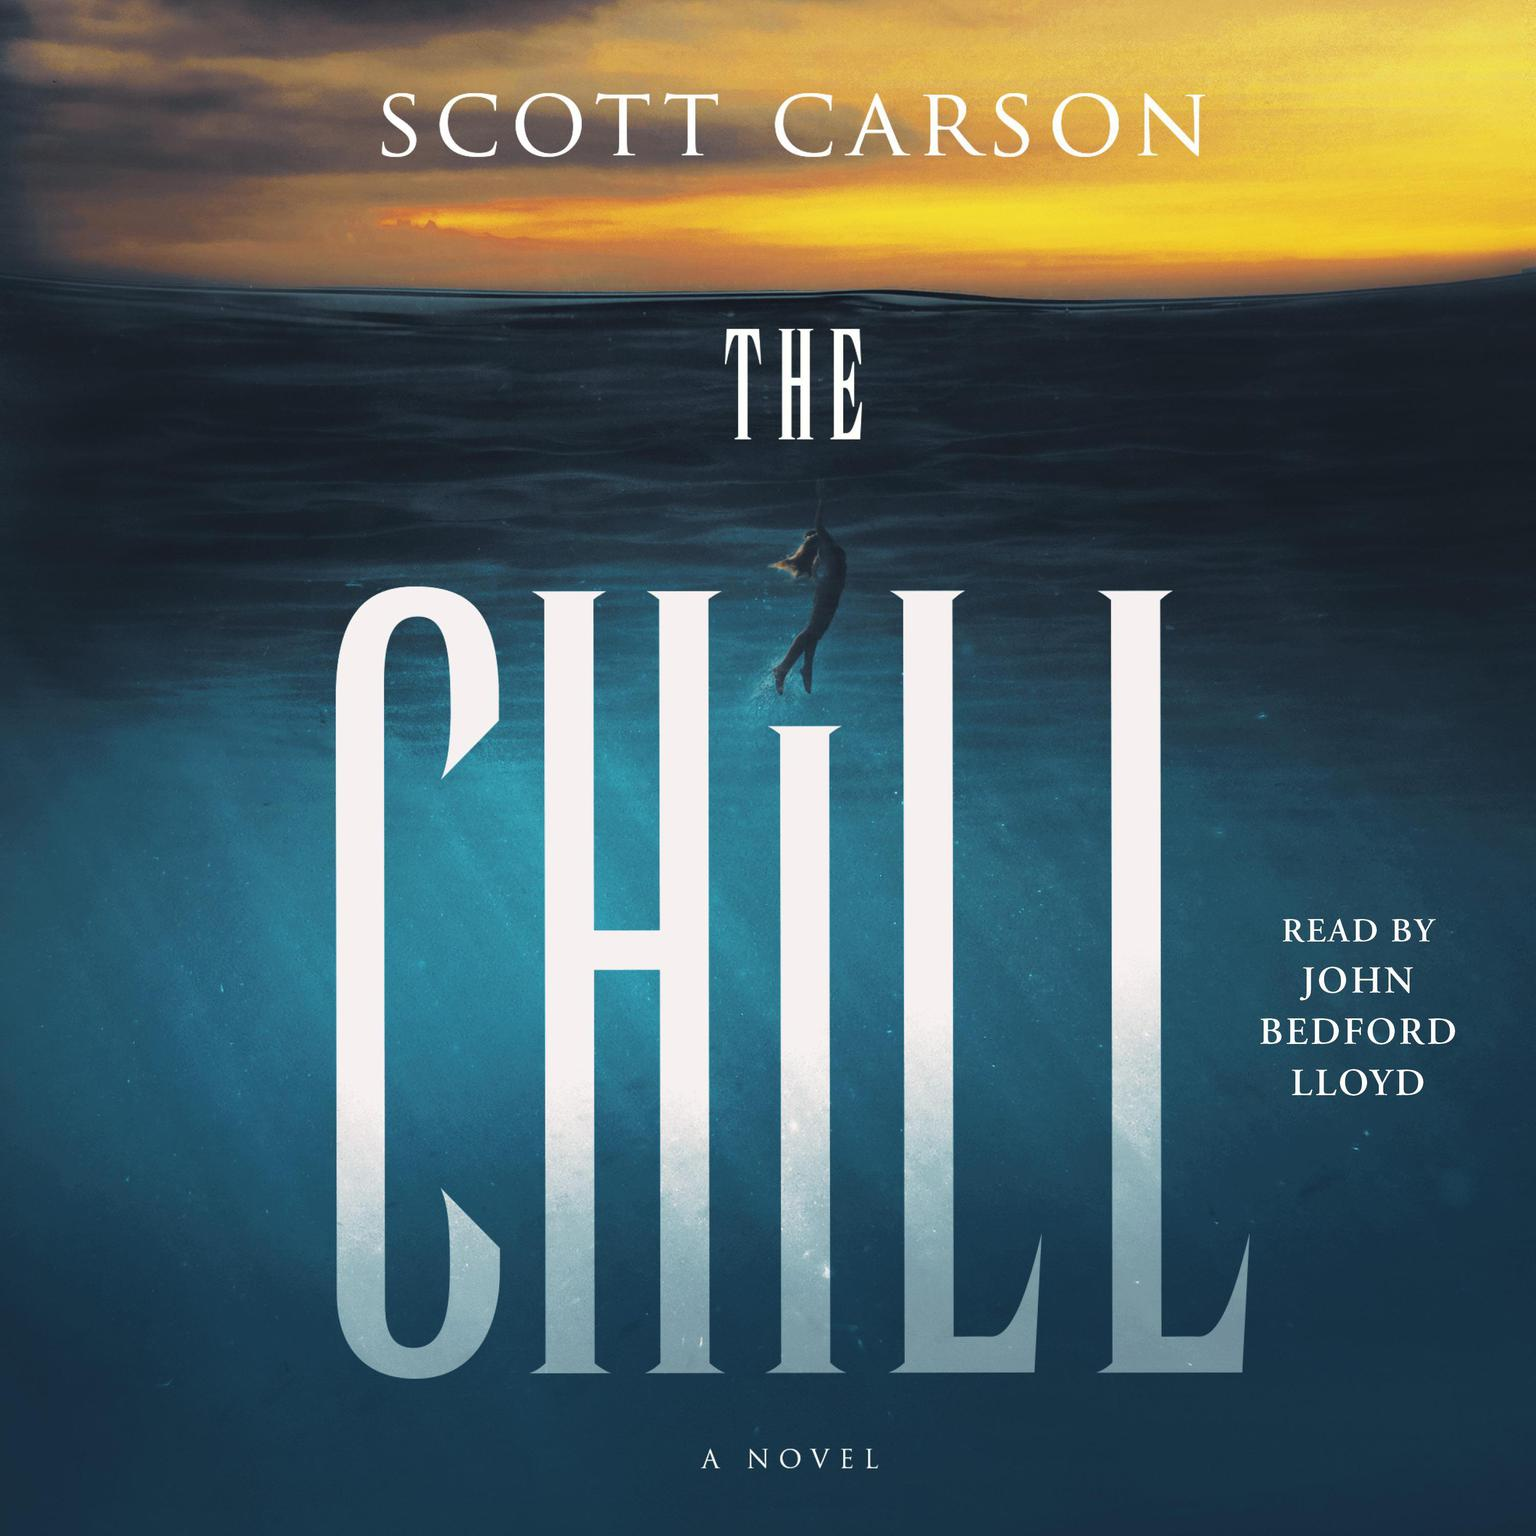 The Chill: A Novel Audiobook, by Scott Carson